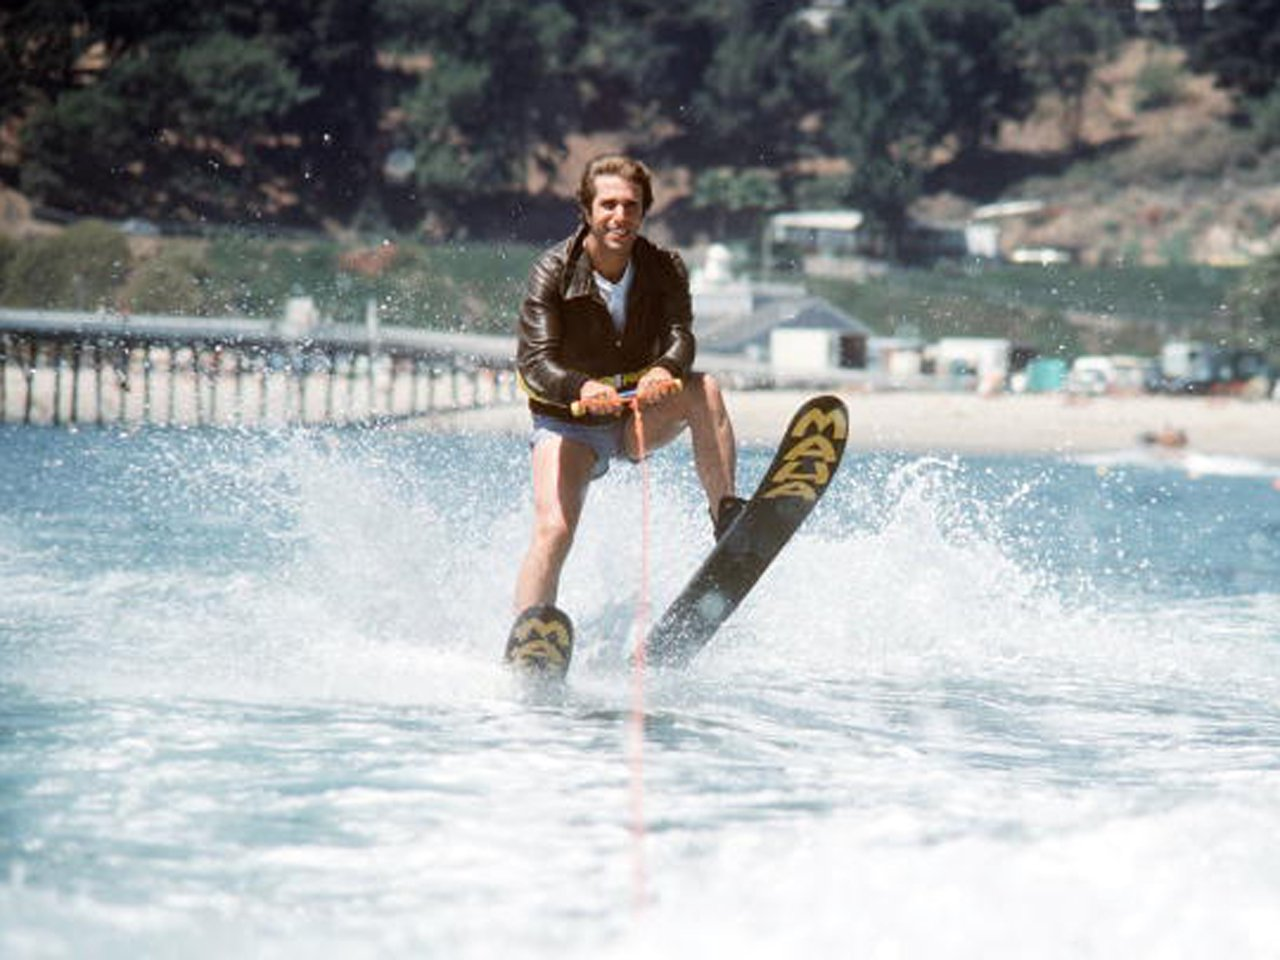 1C4669207 g ent 121108 fonz jump shark 12 Amazing Facts You Didn't Know About Happy Days